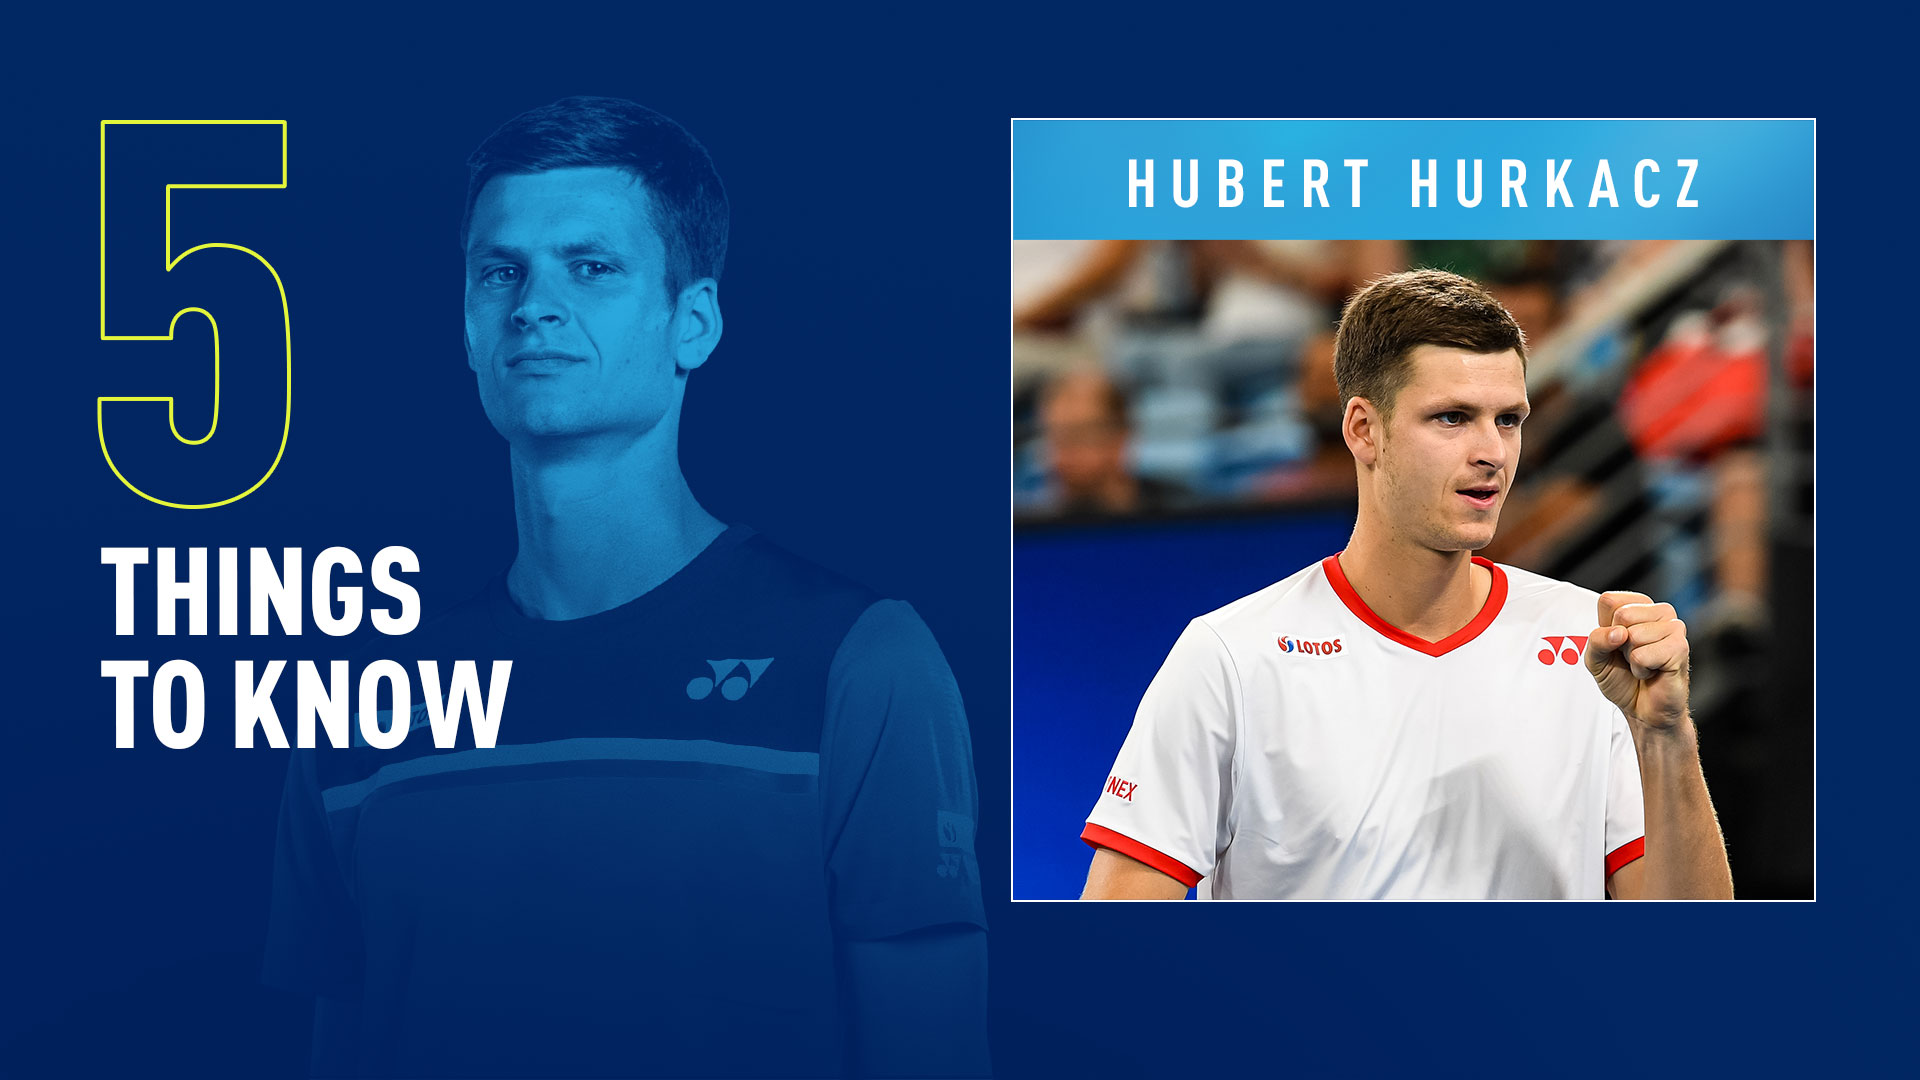 Hubert Hurkacz is the top-ranked Polish player in the FedEx ATP Rankings.